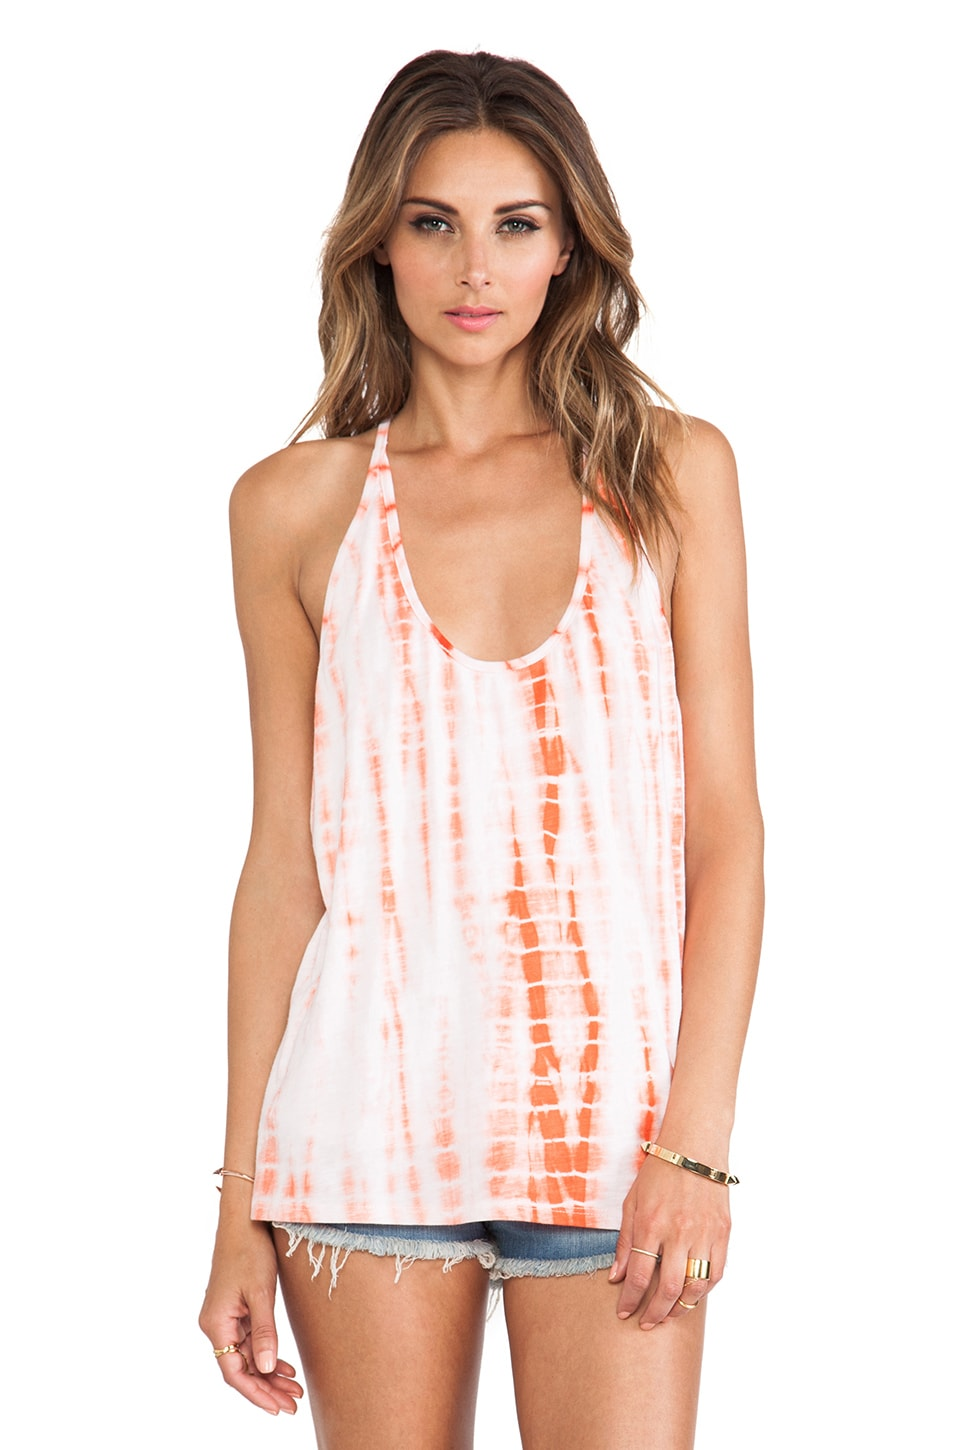 WOODLEIGH Nema Top in Bright Coral